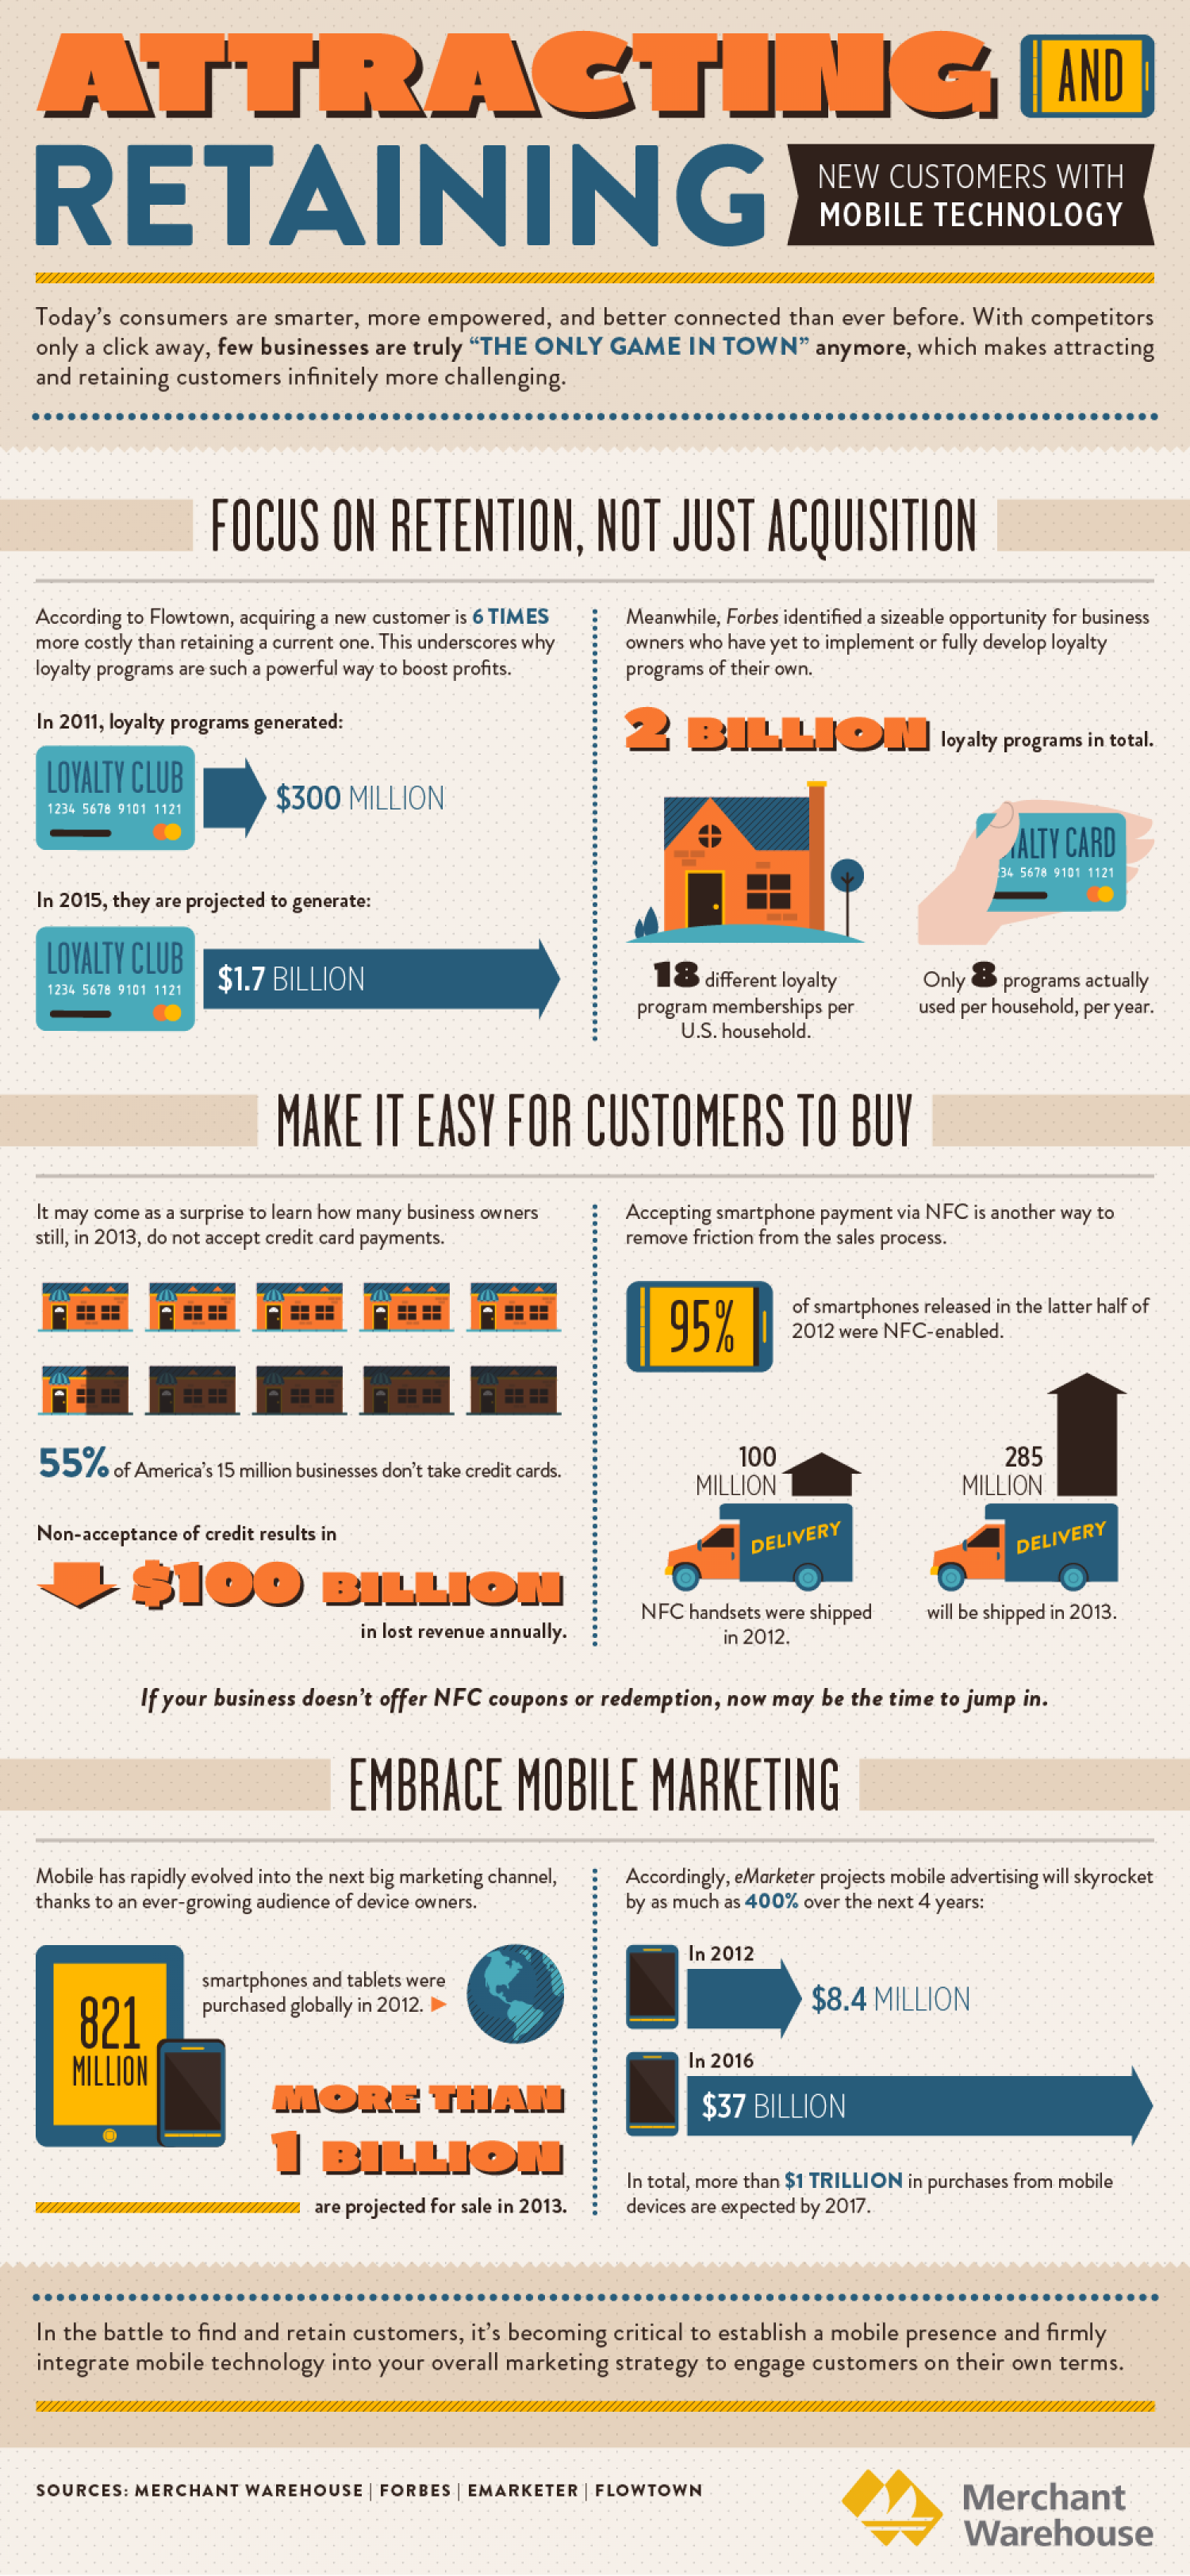 Attracting and Retaining New Customers with Mobile Technology Infographic